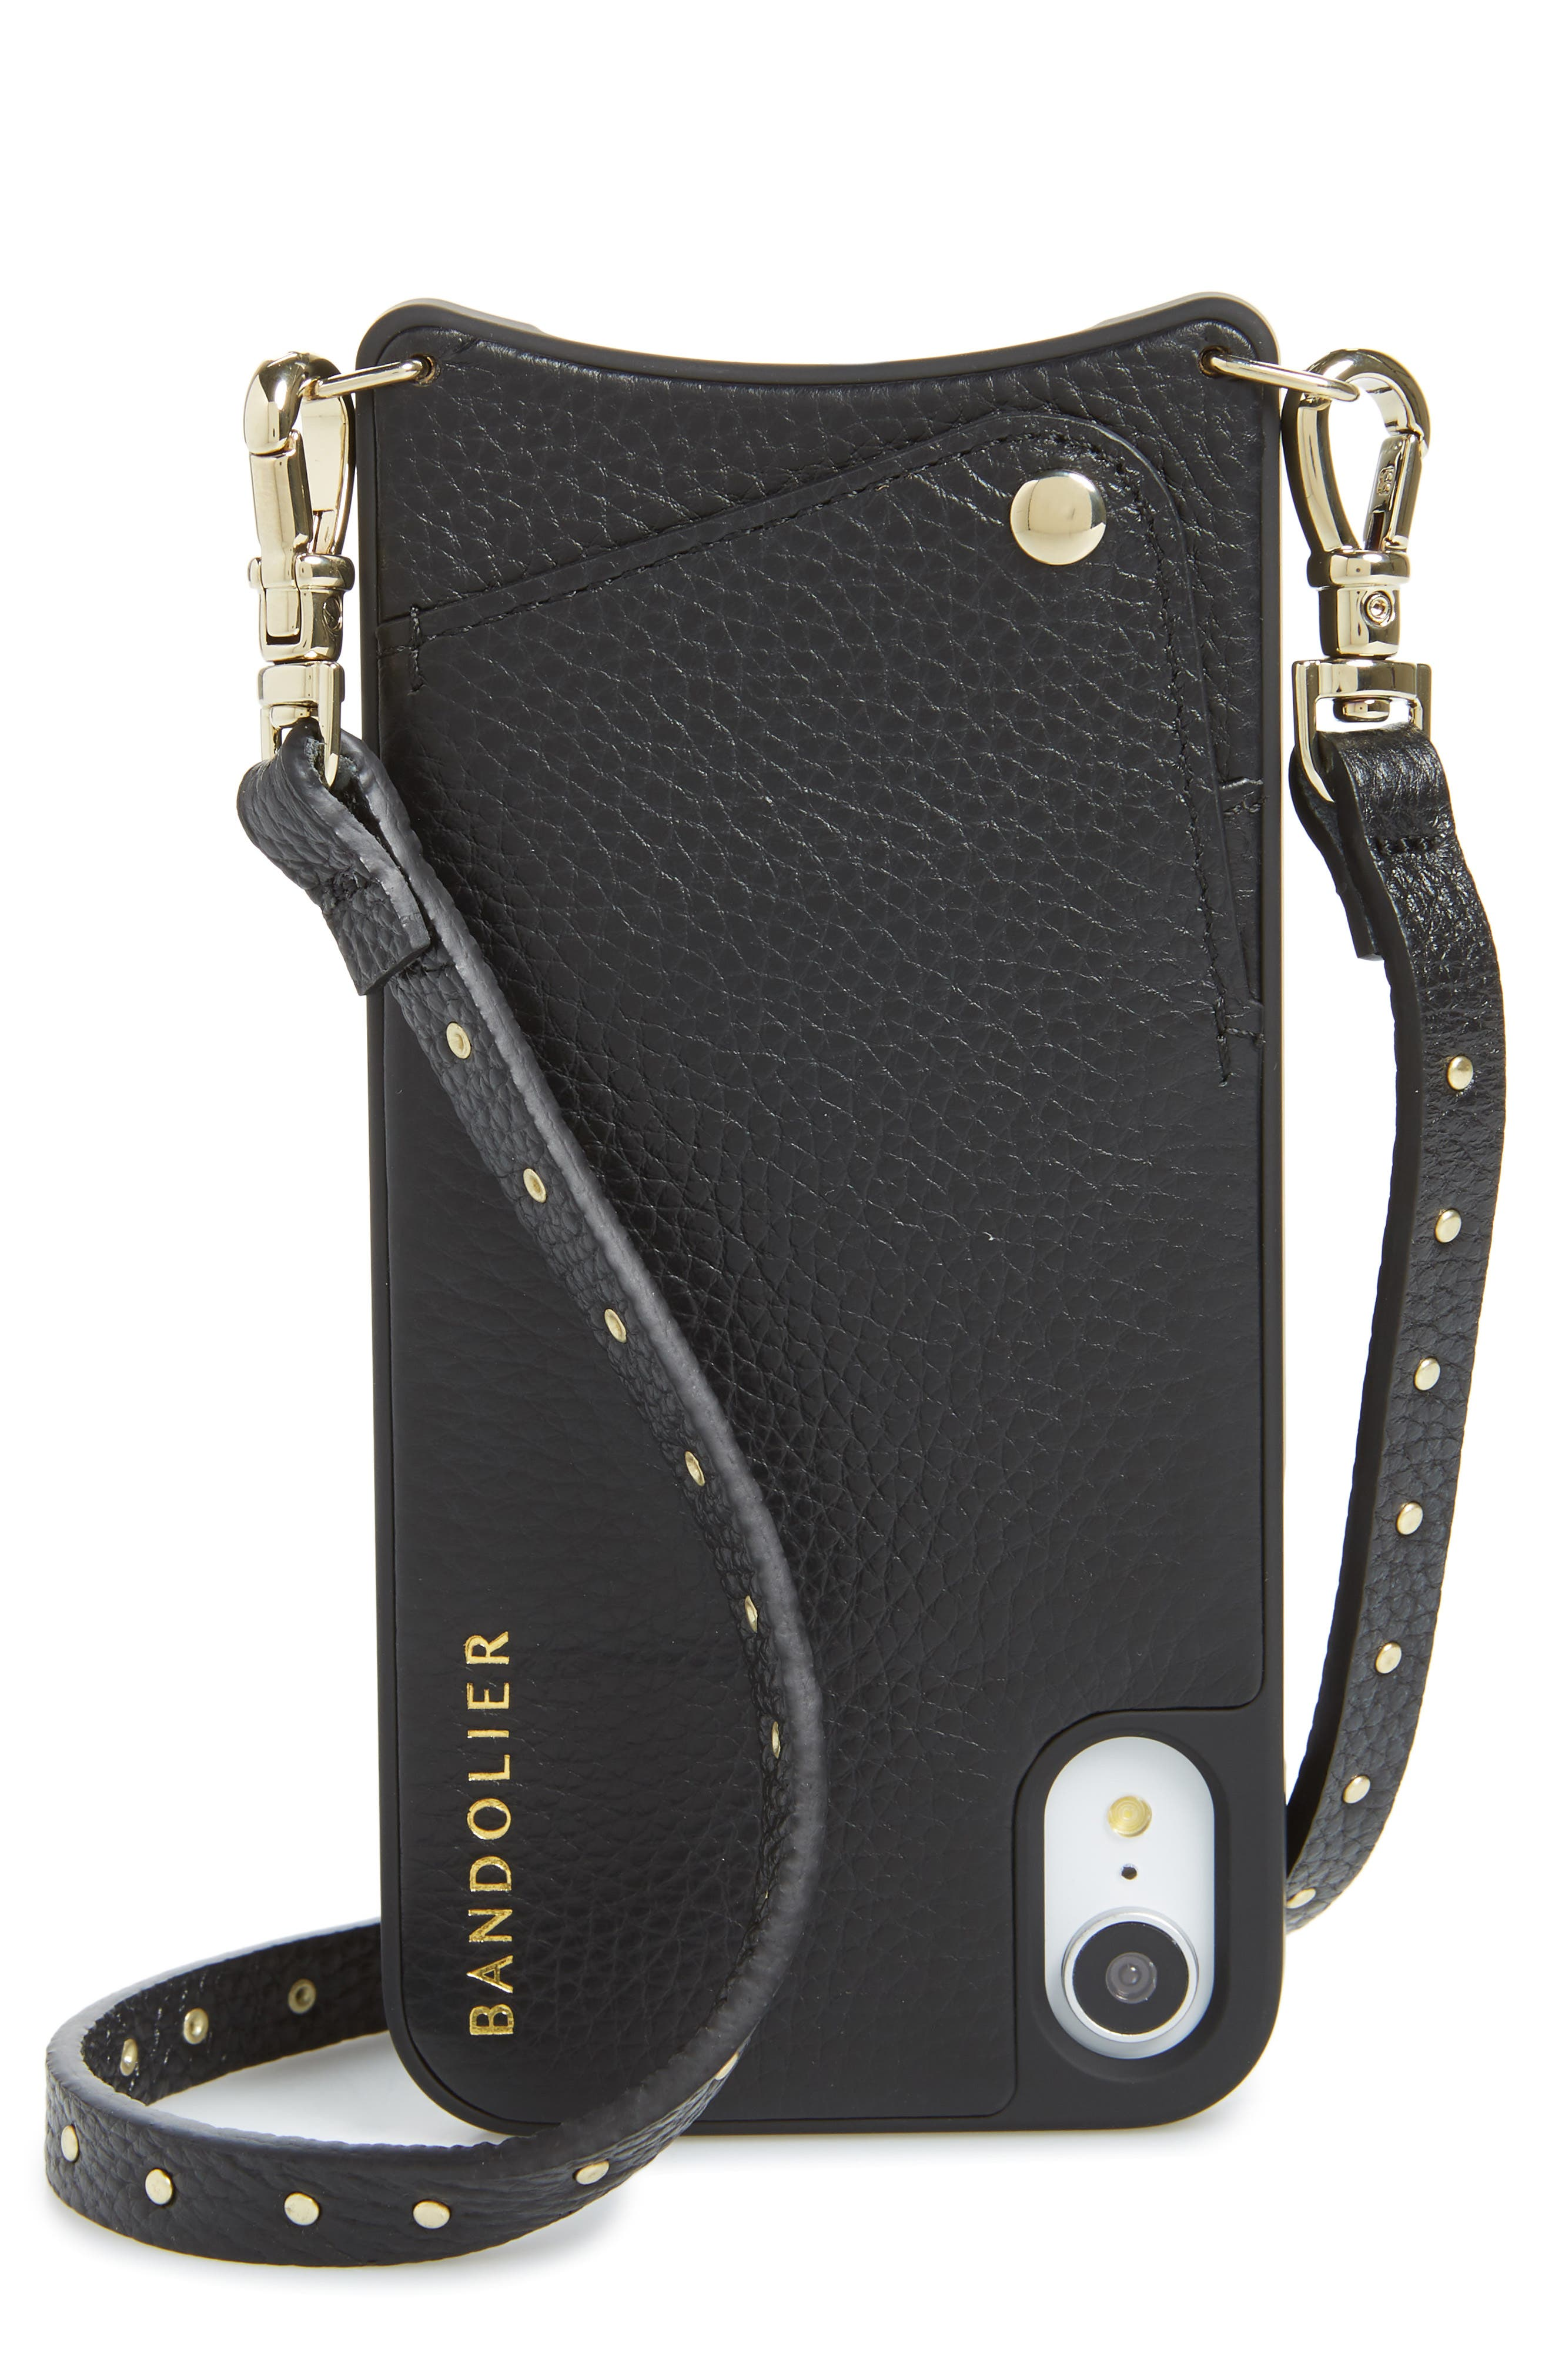 BANDOLIER Nicole Pebbled Leather X/Xs/Xs Max & XR Crossbody Case, Main, color, BLACK/ GOLD